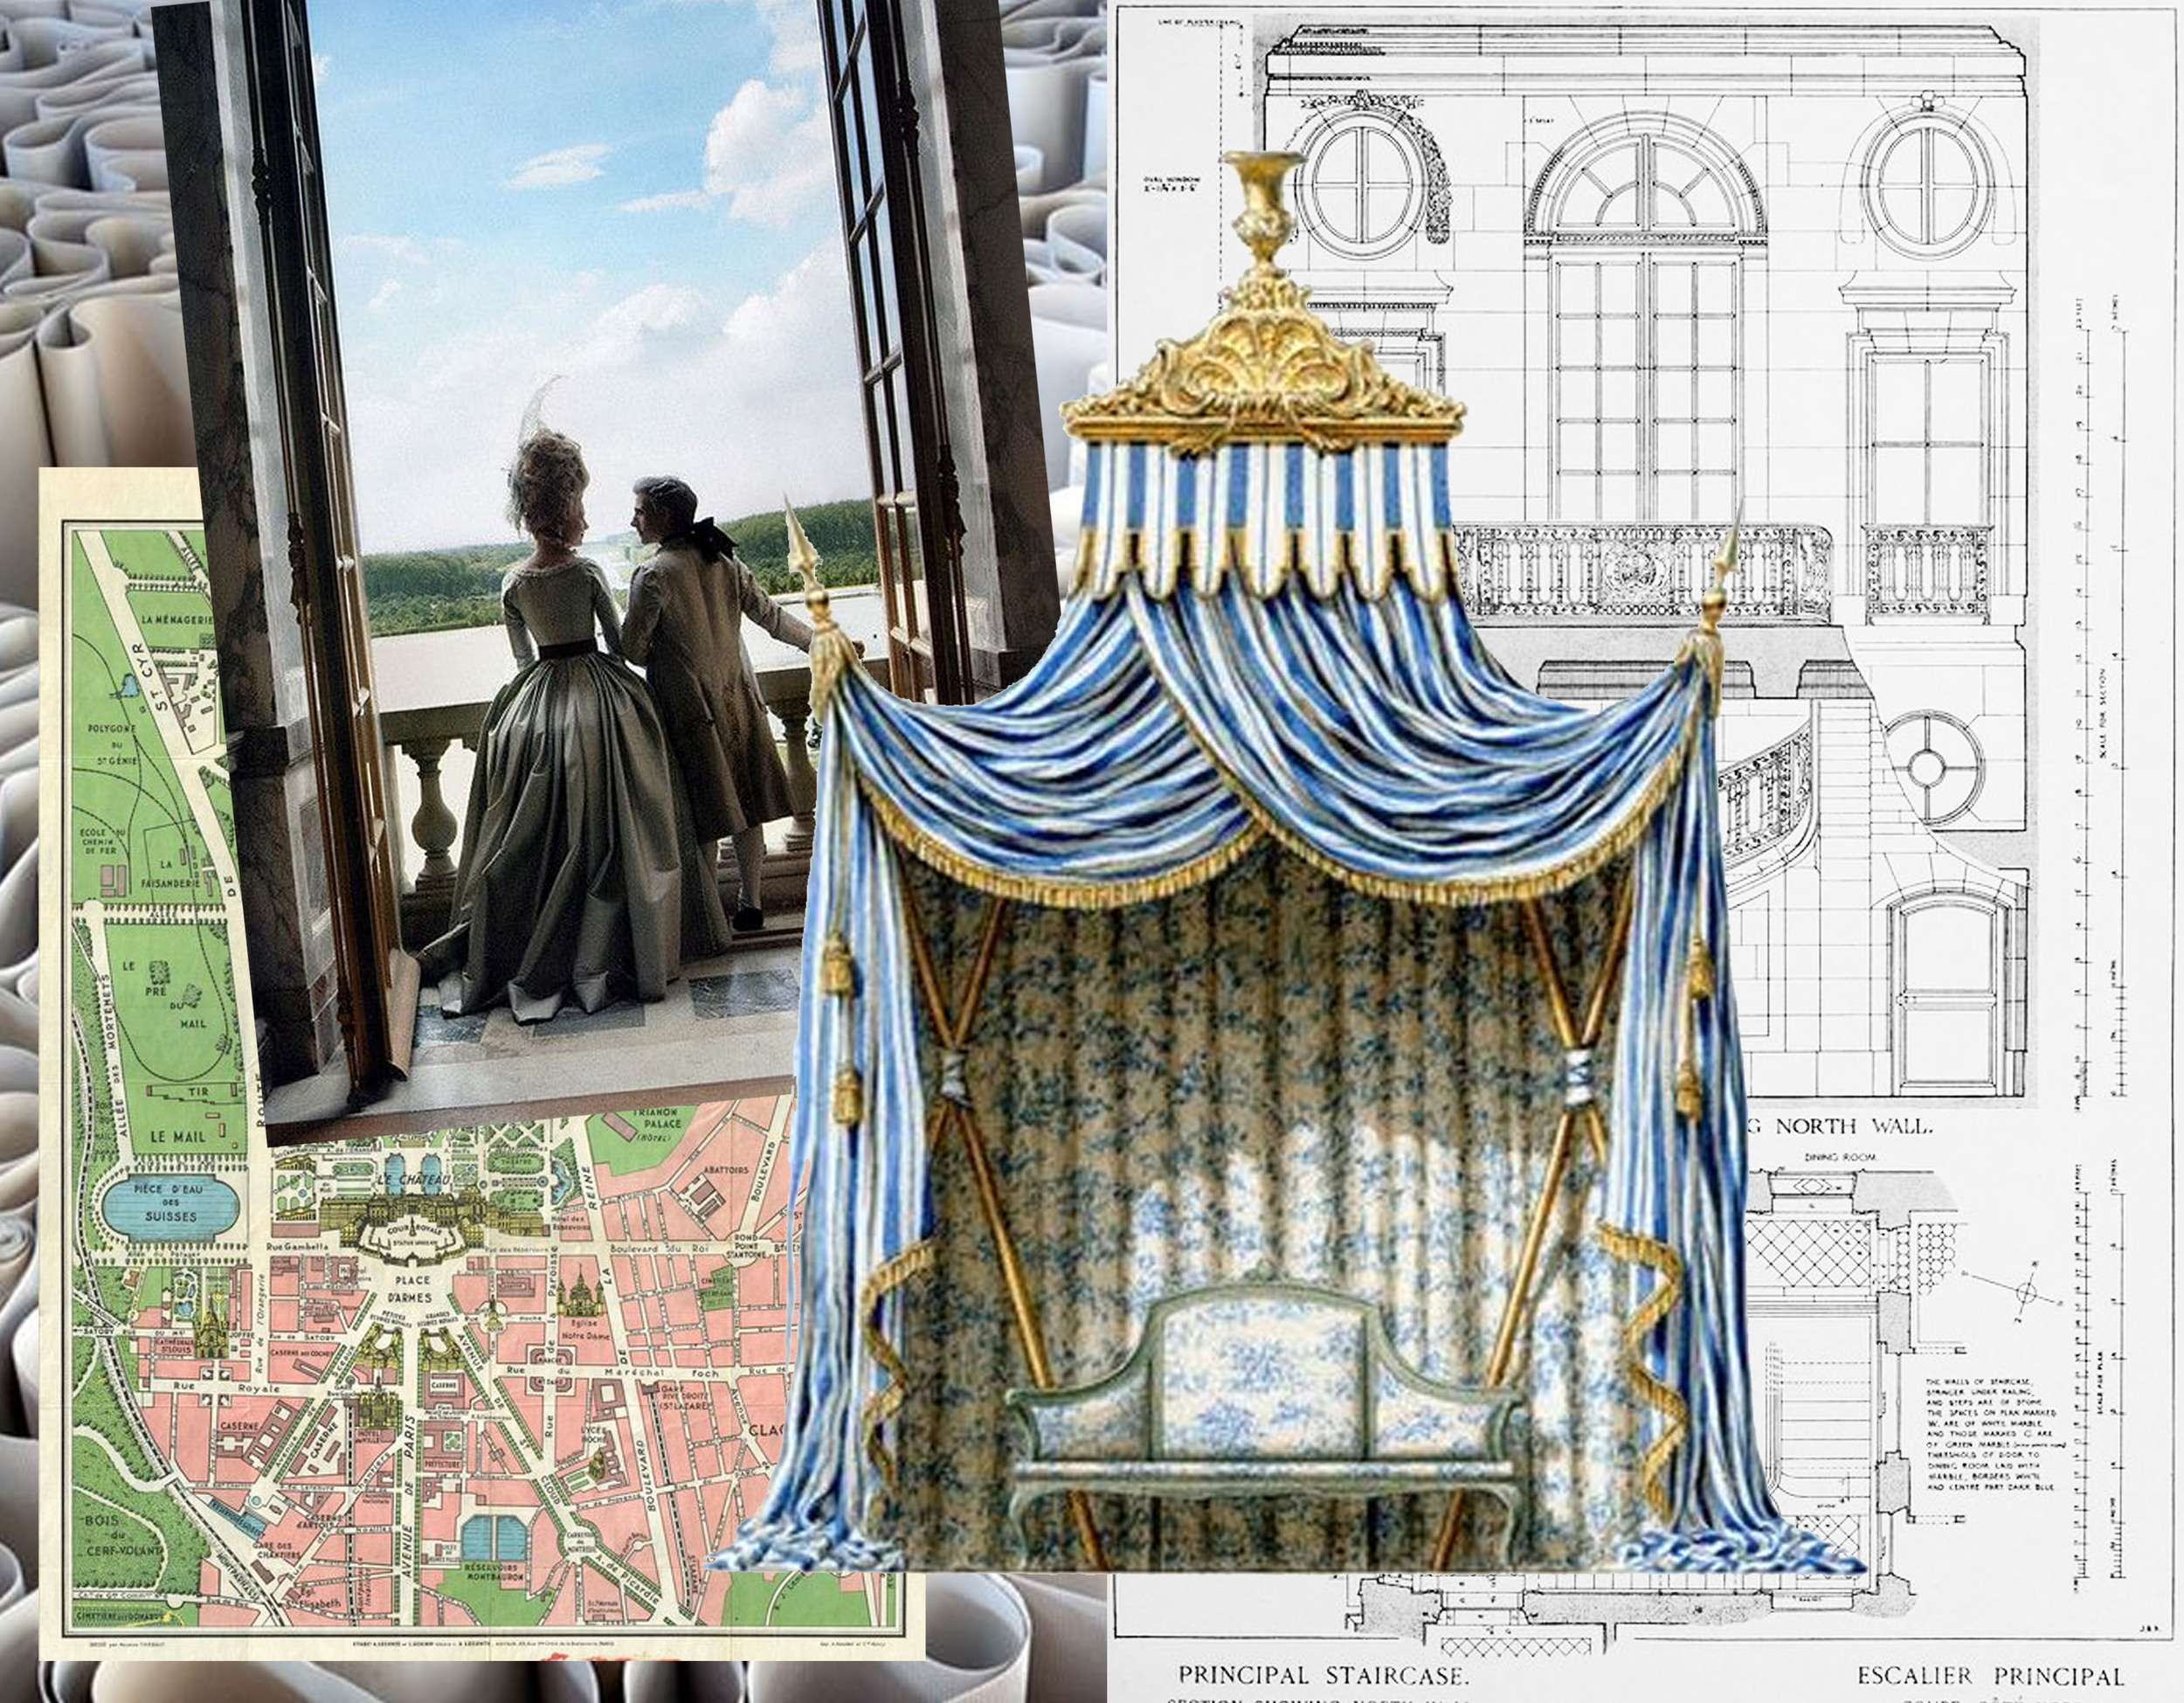 plan gardens Versailles via  Pinterest  - still from movie Marie Antoinette - facade Petit Trianon via  Archi/Maps  - garden tent  Rococo Revisited